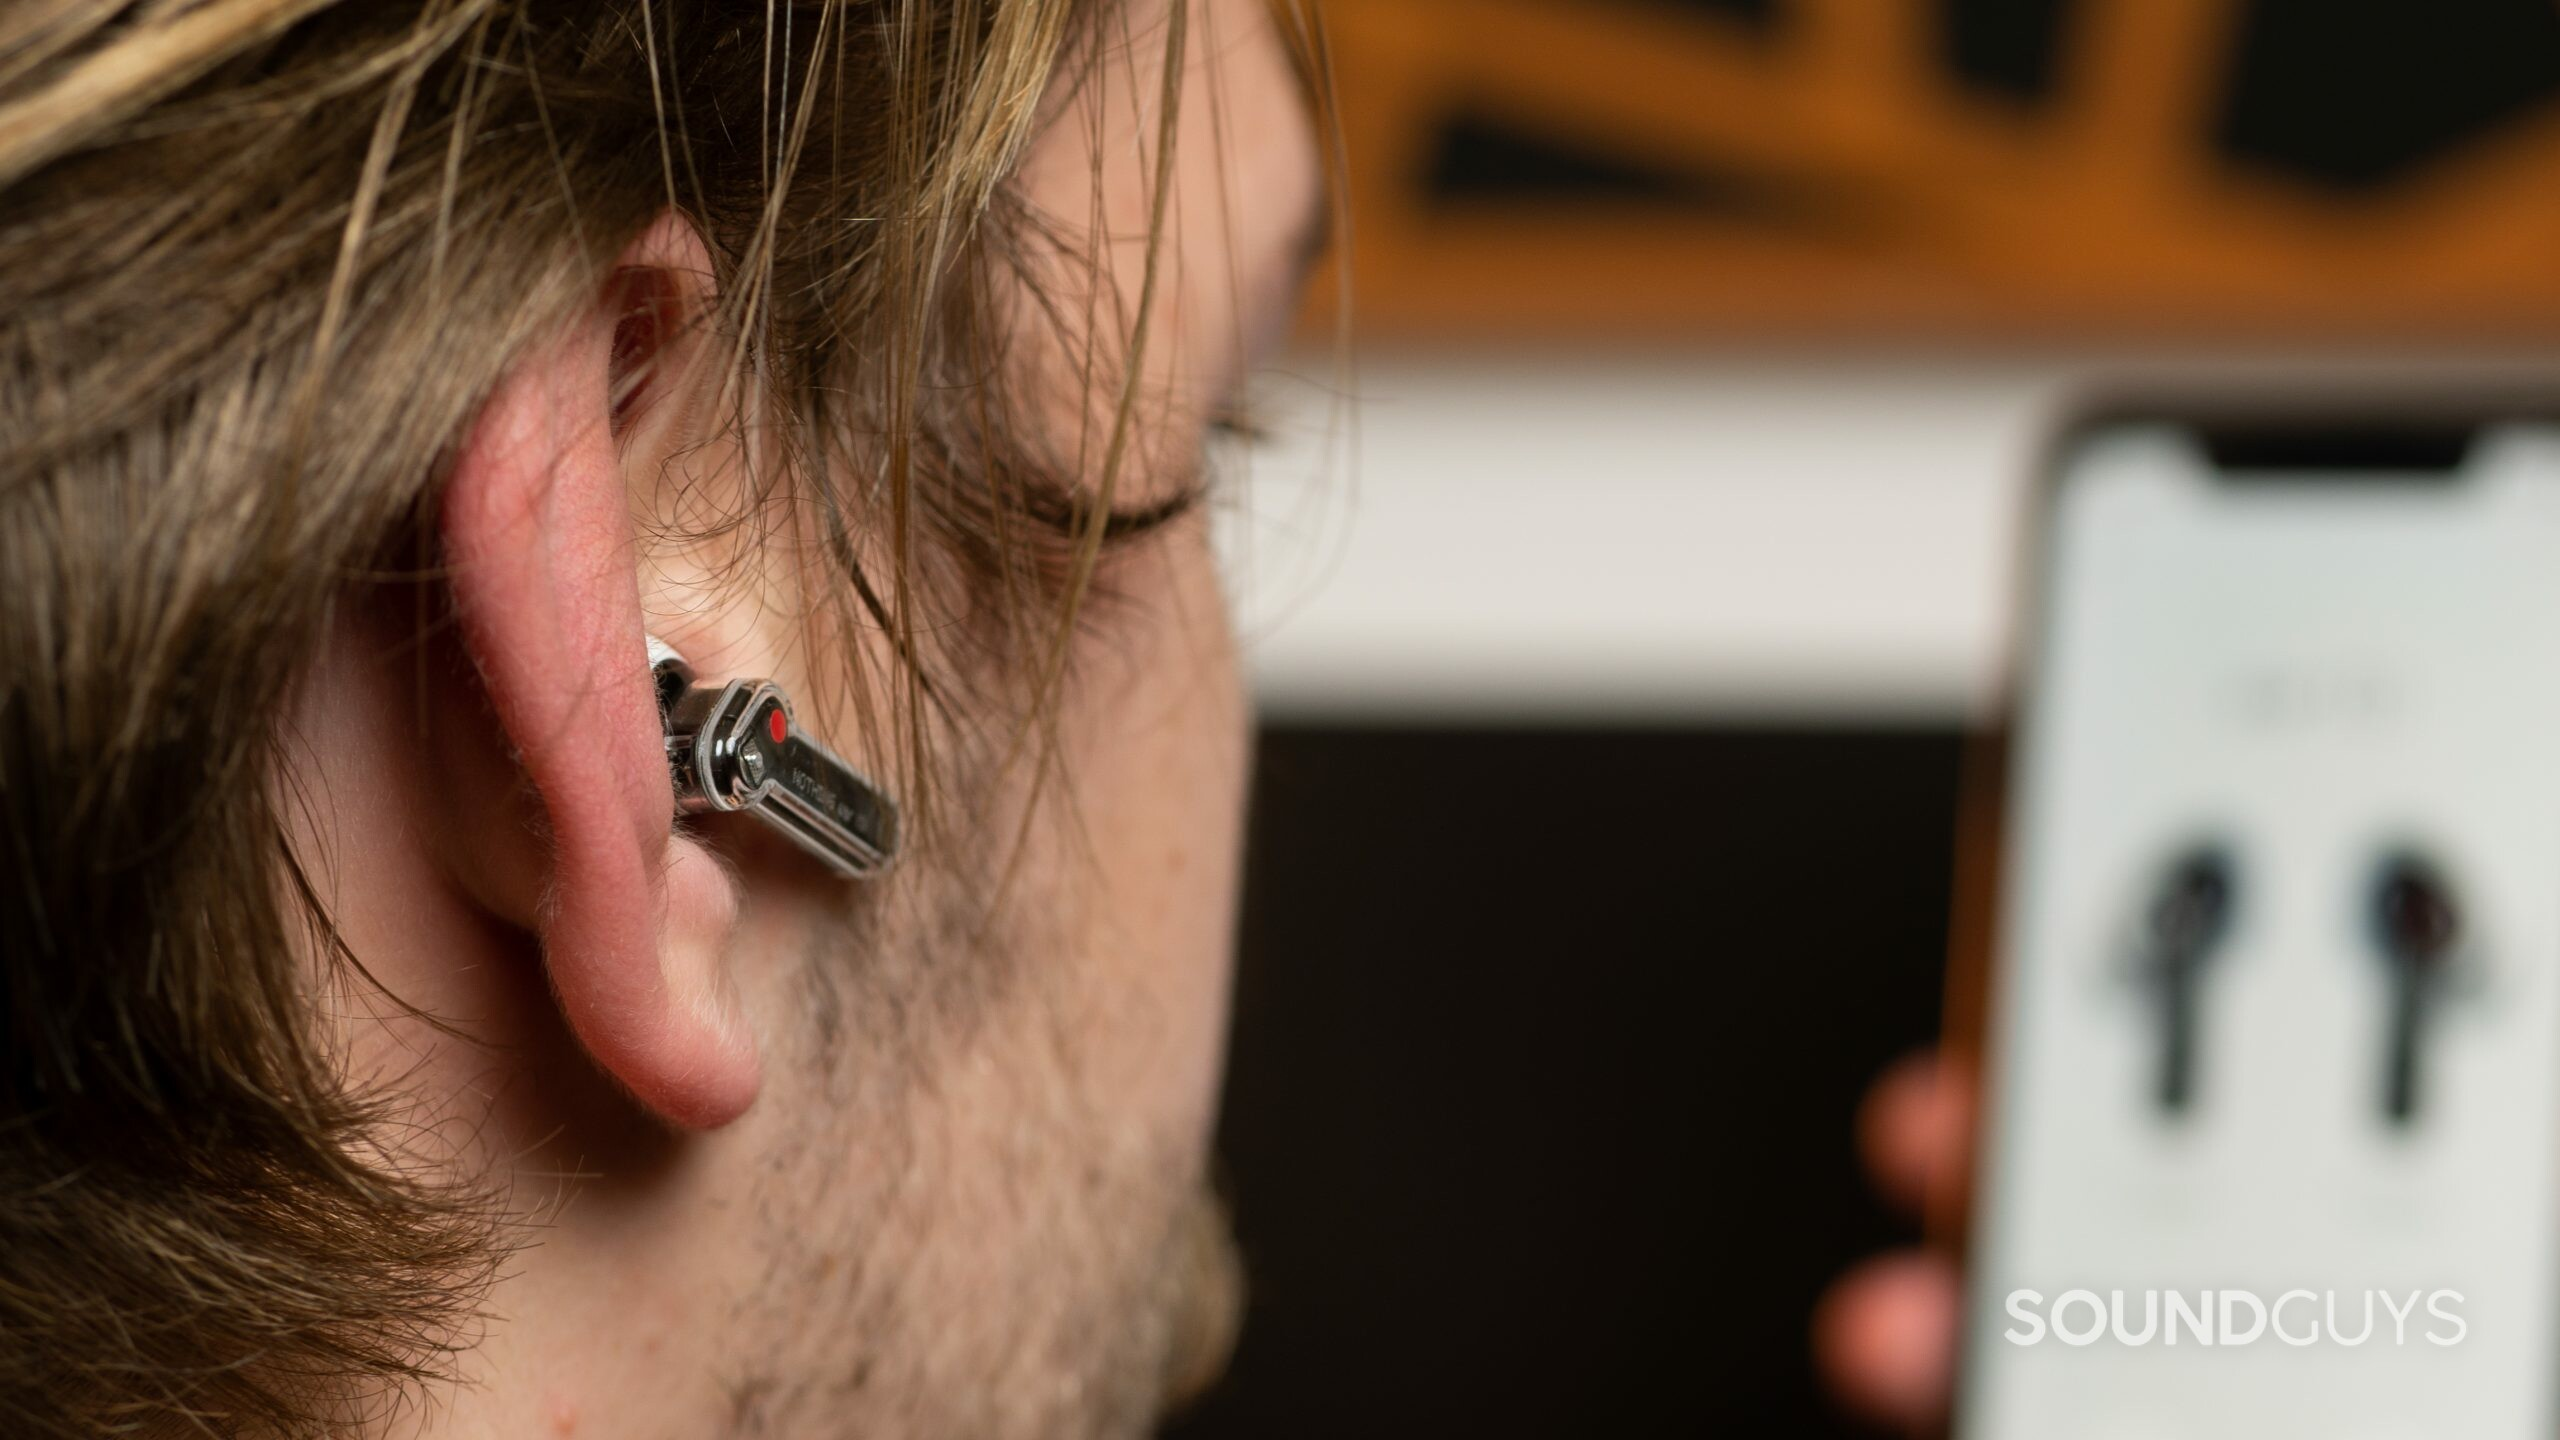 The Nothing Ear 1 true wireless earbud inserted into a man's right ear.